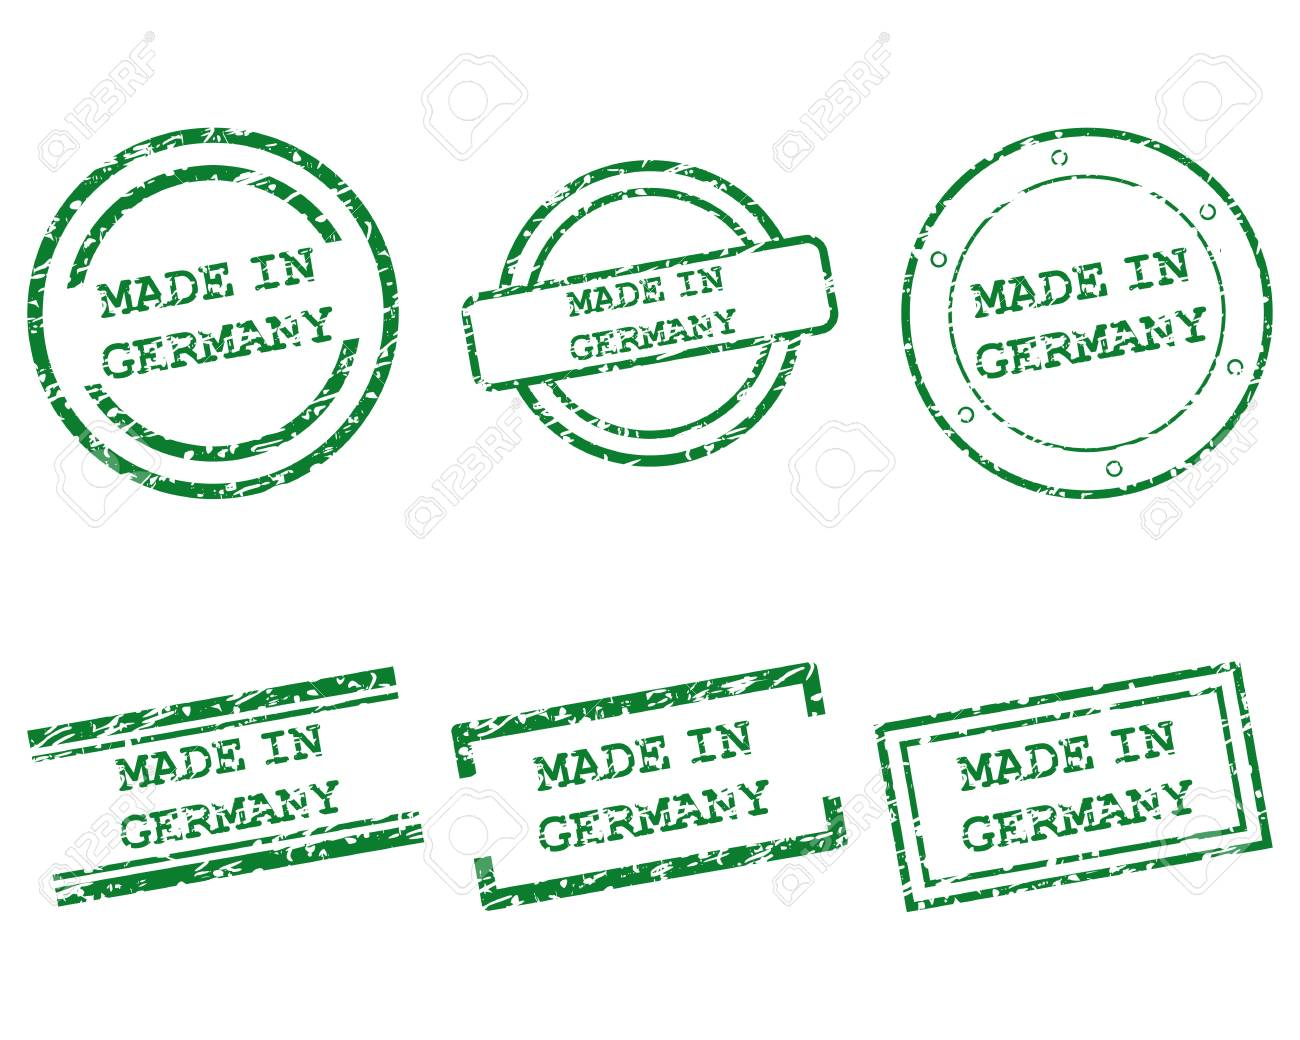 Made in Germany stamps Stock Vector - 13955971